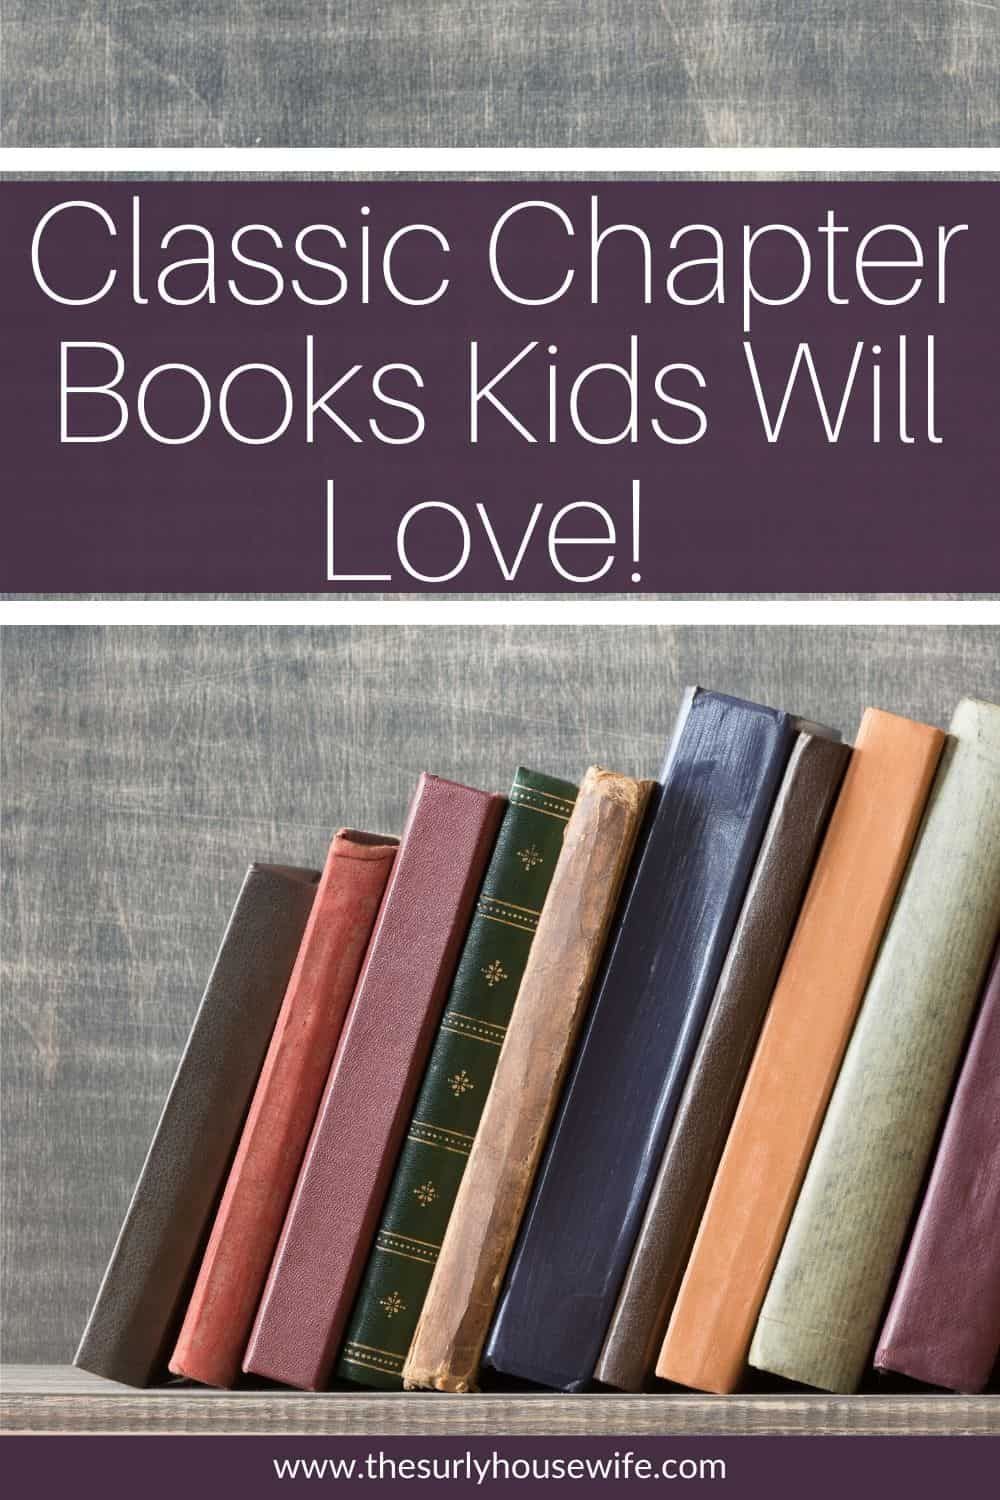 Searching for classic books for kids? Don't miss this post for timeless books that kids (AND parents) will love and read for years to come! A must-read classic book list for kids! It features classic chapter books for kids from ages 8-12.